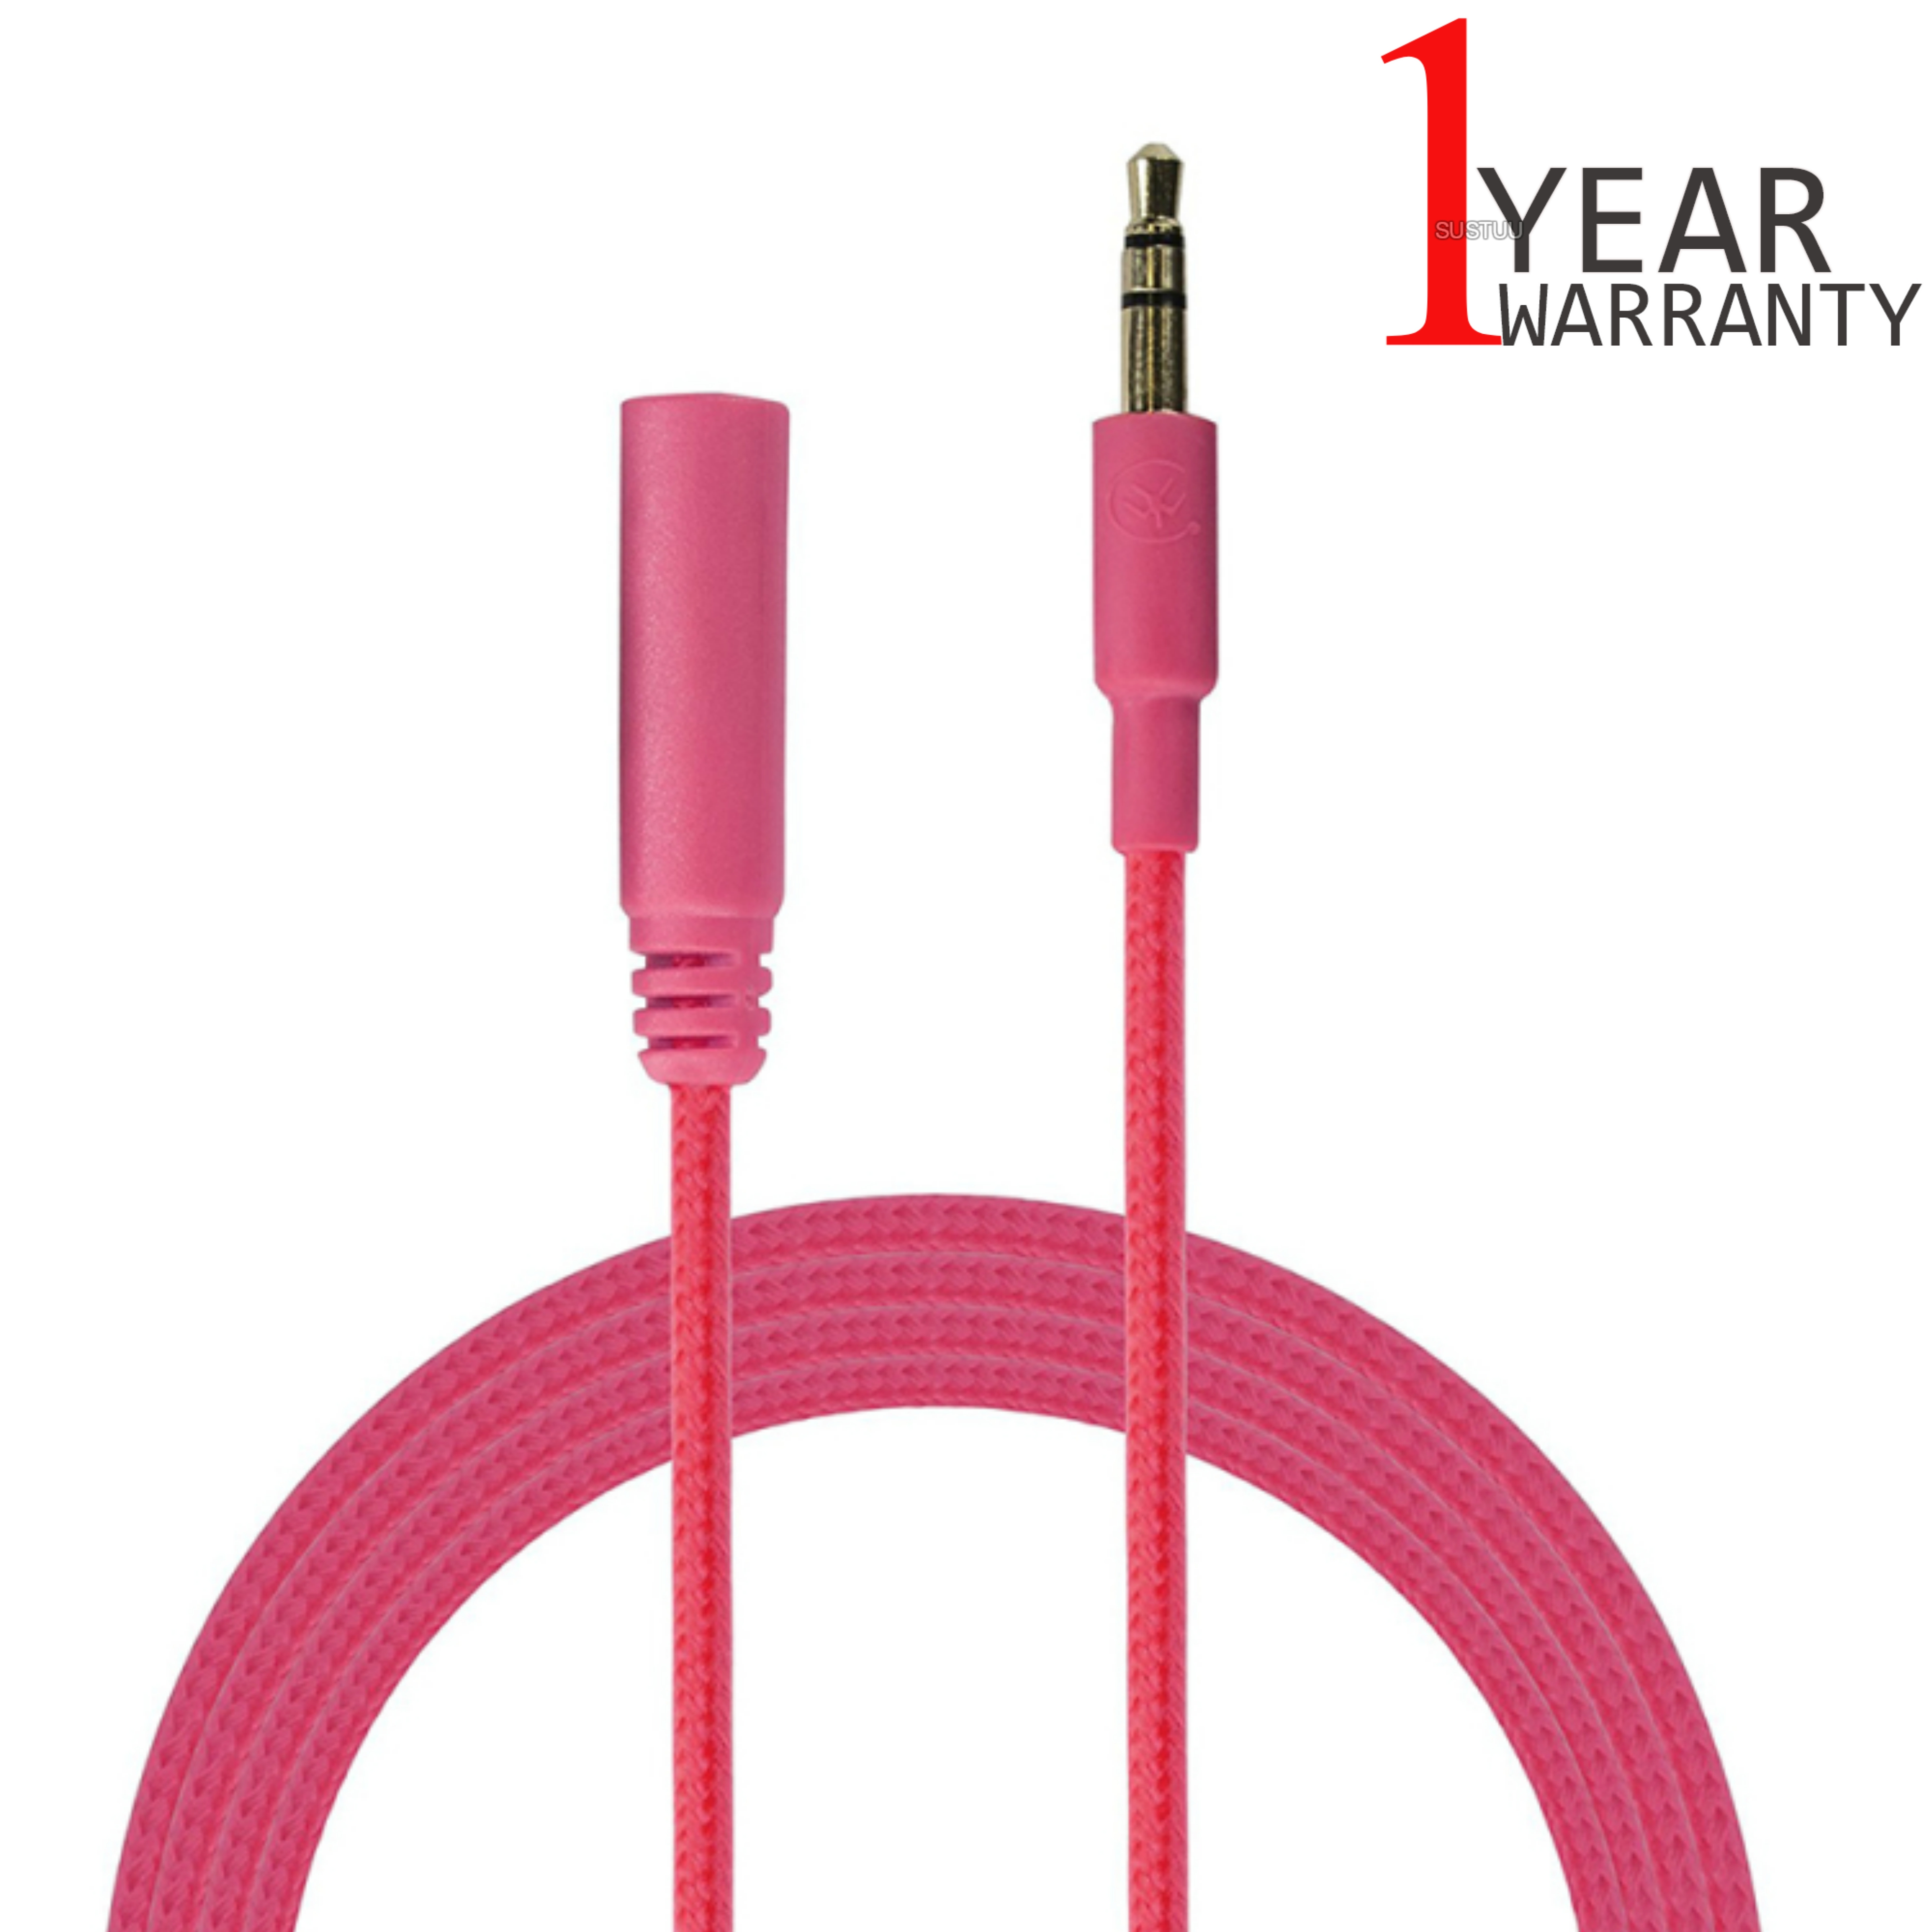 Urbanz 1M Audio Extension Durable Aux Incredi-Cable|3.5mm Corded Jack|Pink